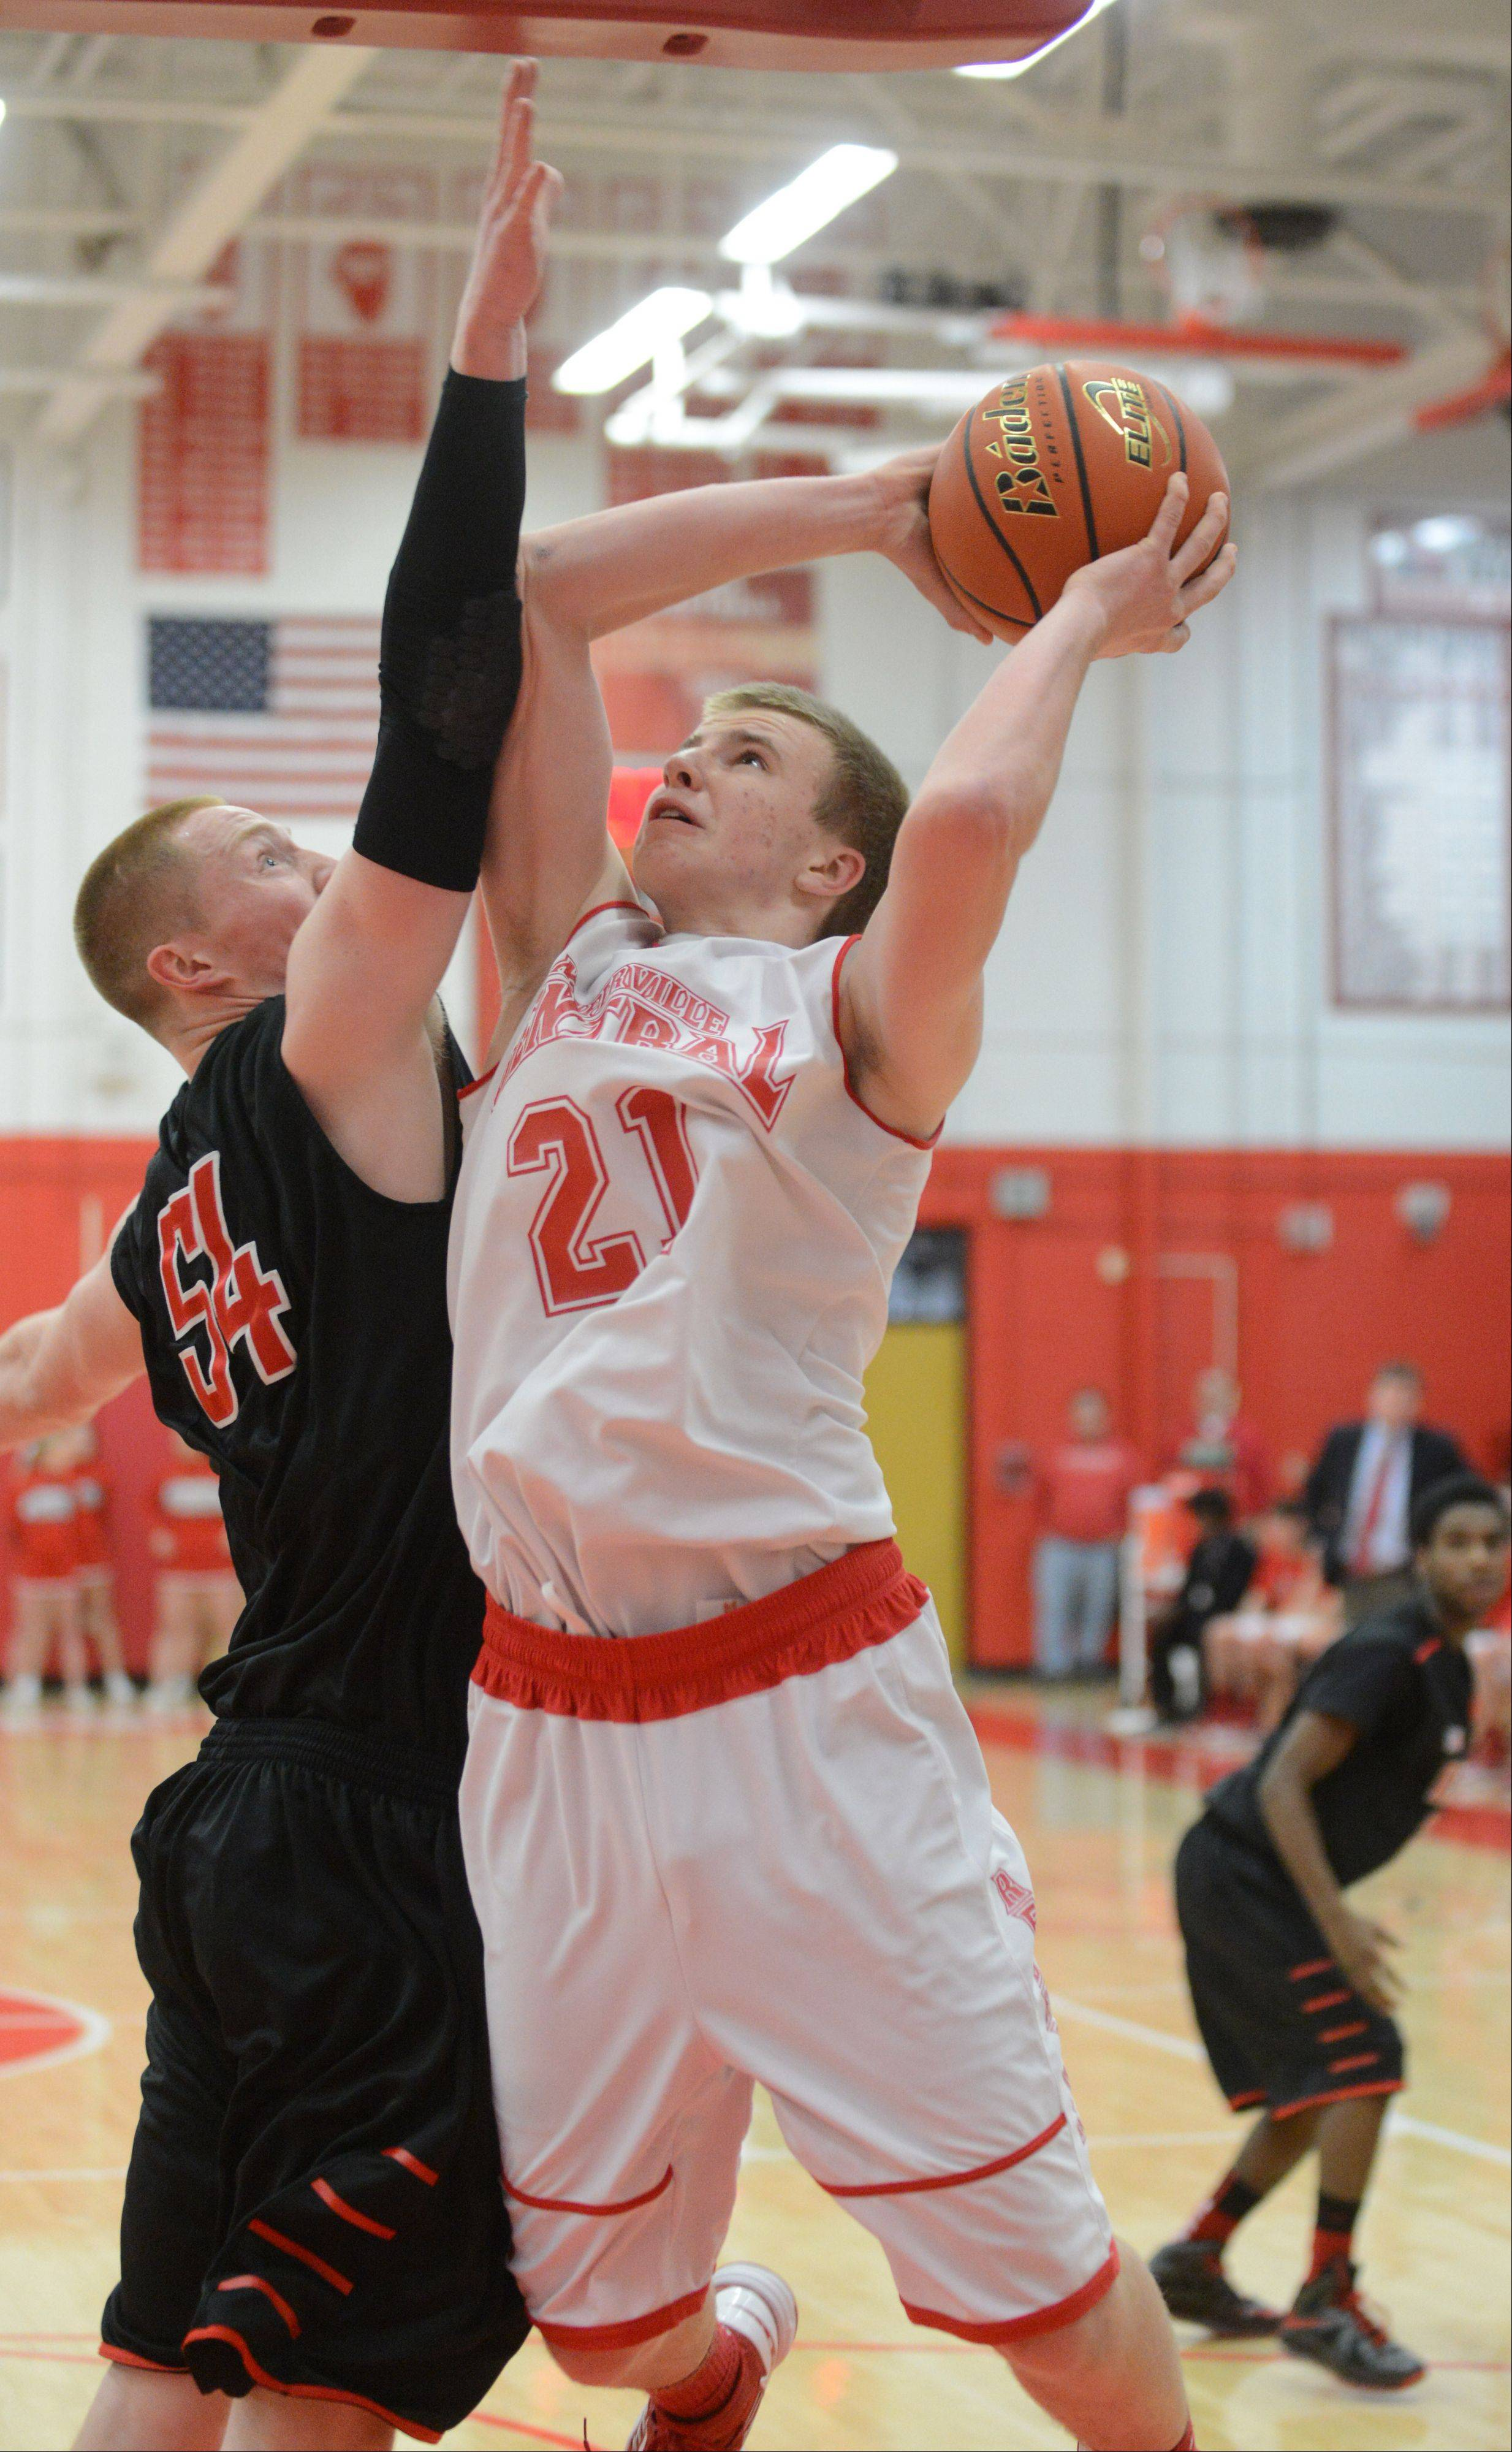 Brandon Havenga pf Glenbard East tries to block a shot from Mike Blaszczyk of Naperville Central during the Glenbard East at Naperville Central boys basketball game Friday.